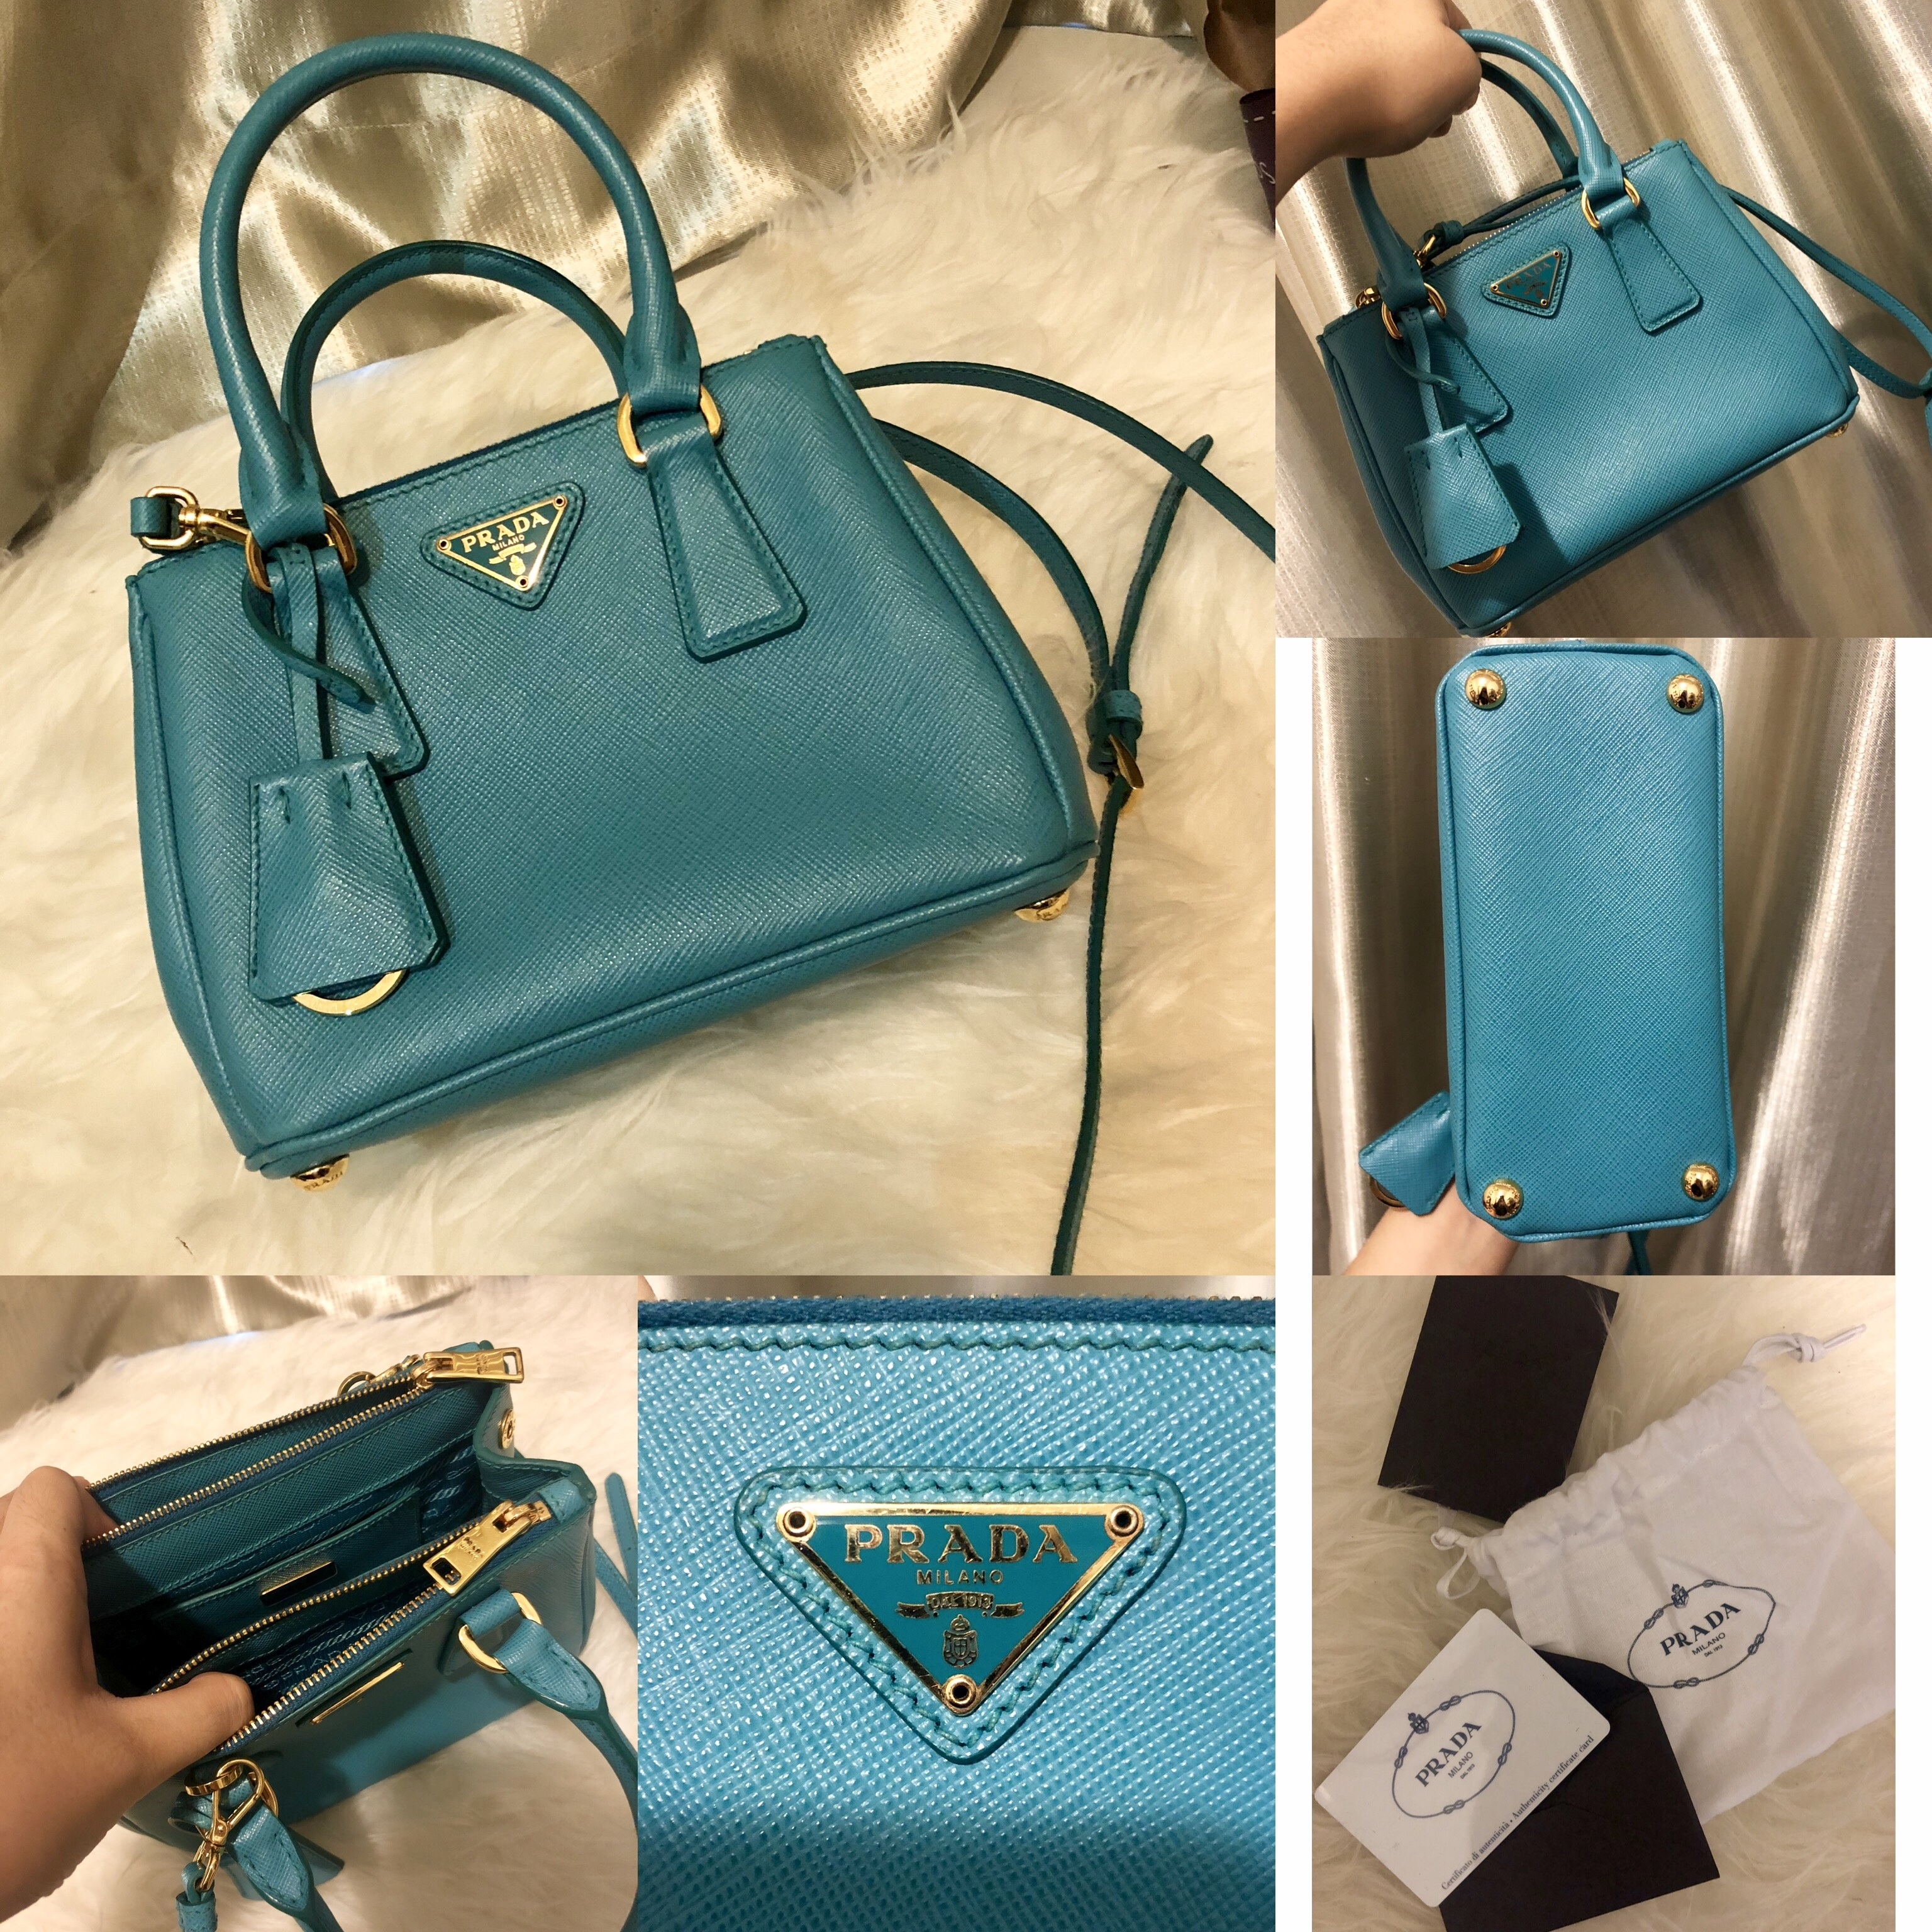 6883297ed9d2 Prada mini bag Measurements : 18cmx13cmx8.5cm Condition : 9/10 (only used  twice) Color/Material : Blue-Turquoise with saffiano leather Bought from  Prada ...